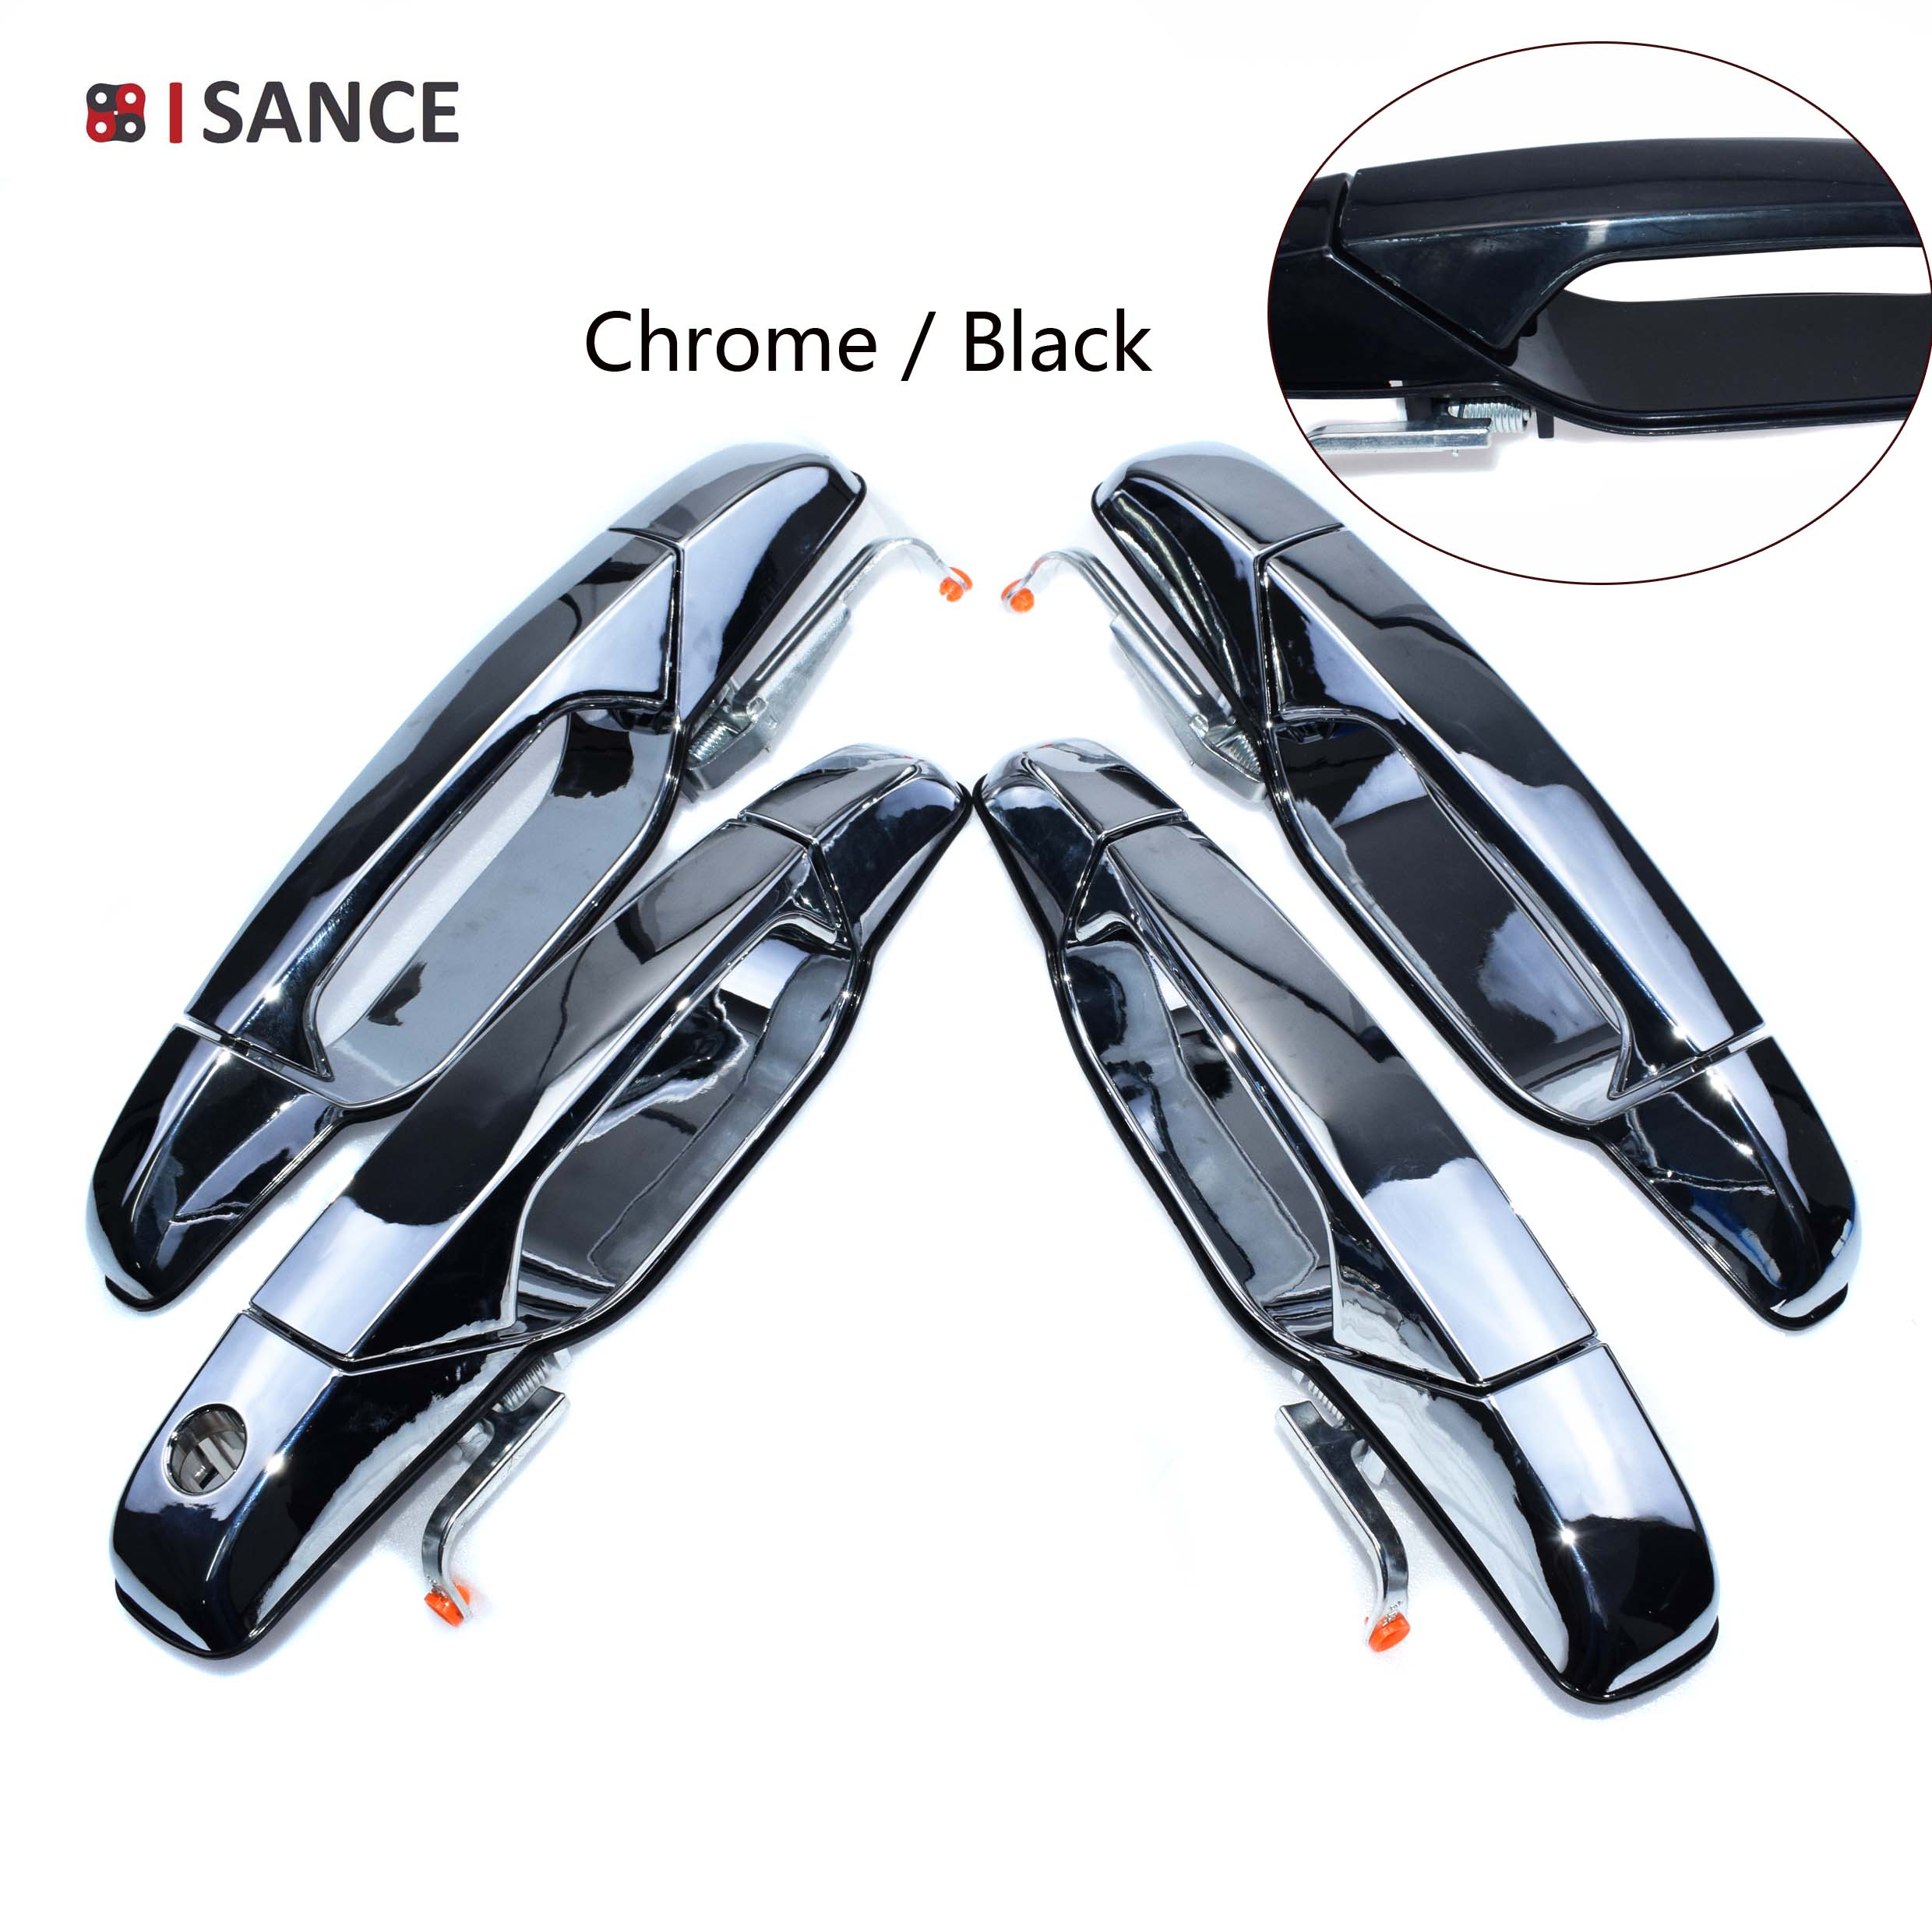 Front Left Driver Side Exterior Chrome Door Handle For 07-13 Chevy GMC Cadillac